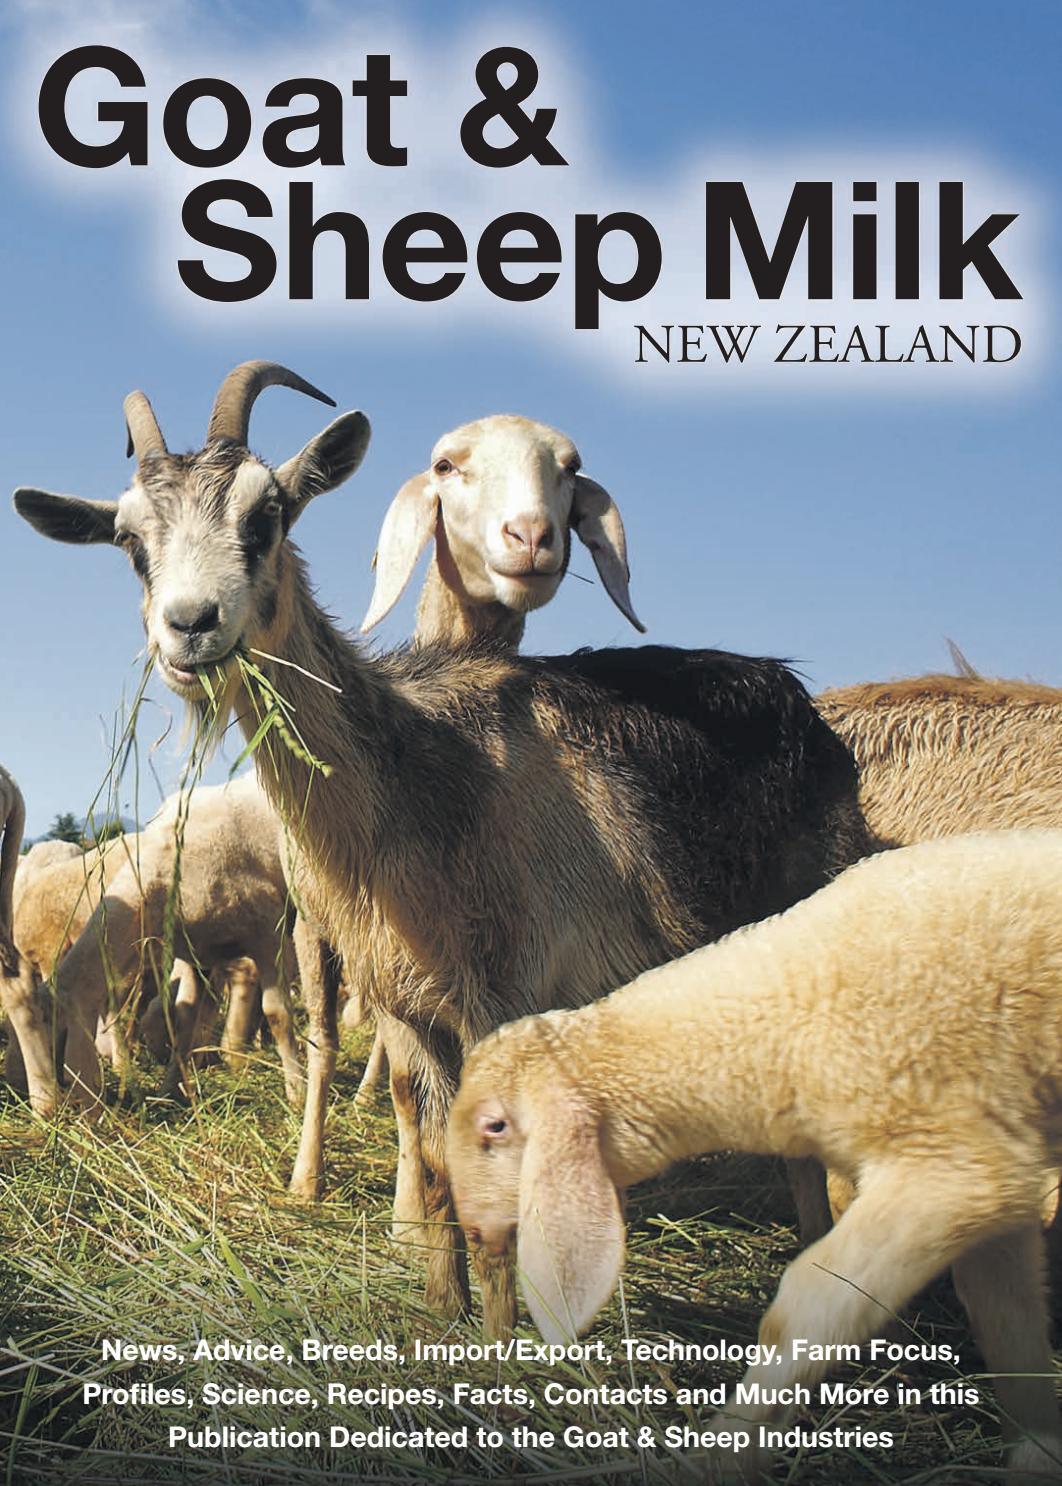 Sheep And Goat Milk New Zealand By Manuel Media Issuu